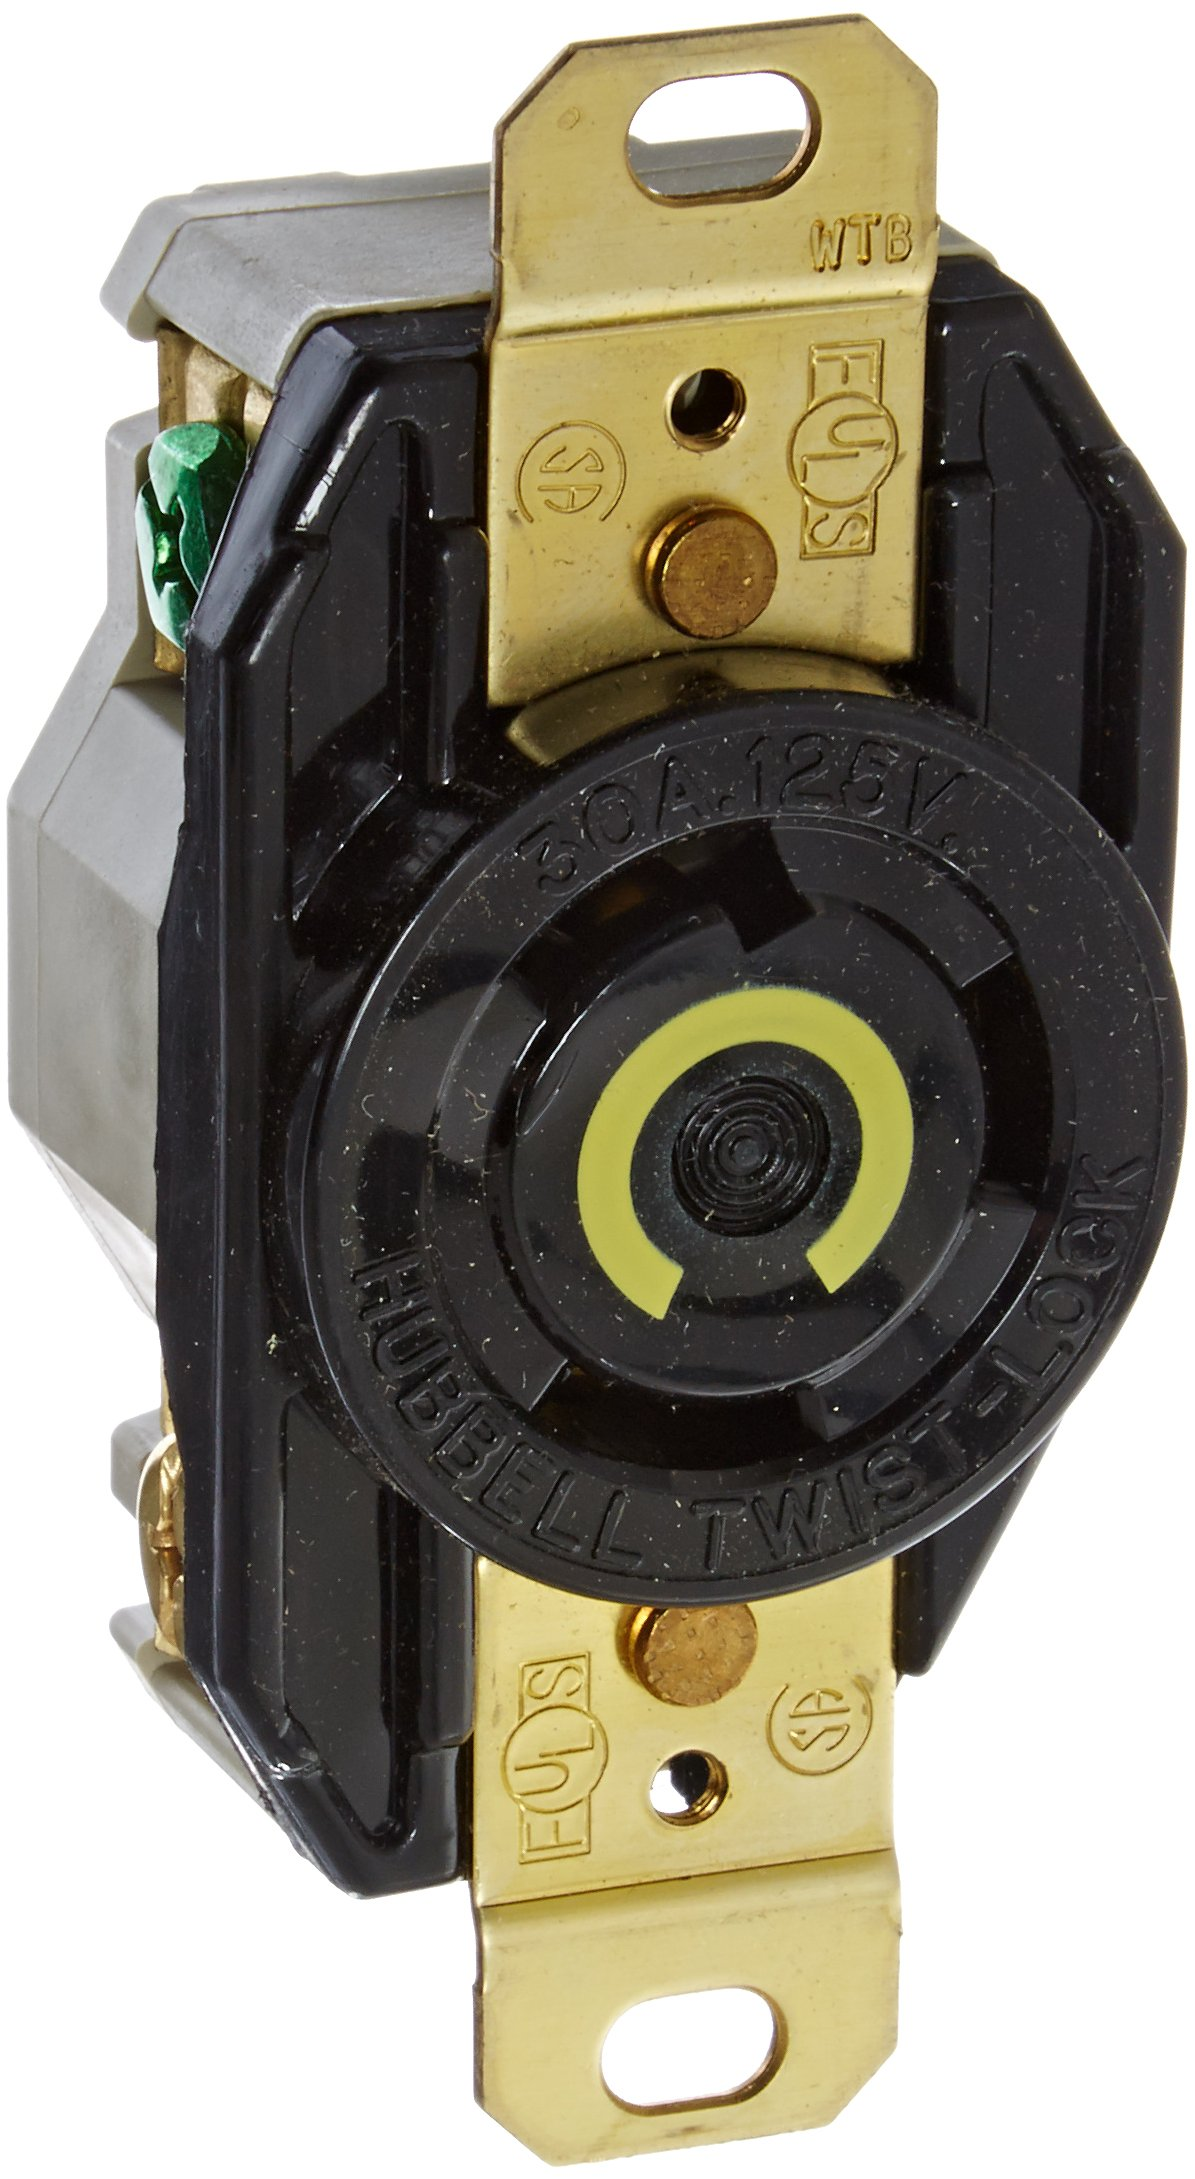 Hubbell Wiring Systems HBL2610 Nylon Face Twist-Lock Receptacle, 30 Ampere, 125V, 2-Pole, 3-Wire Grounding, Black